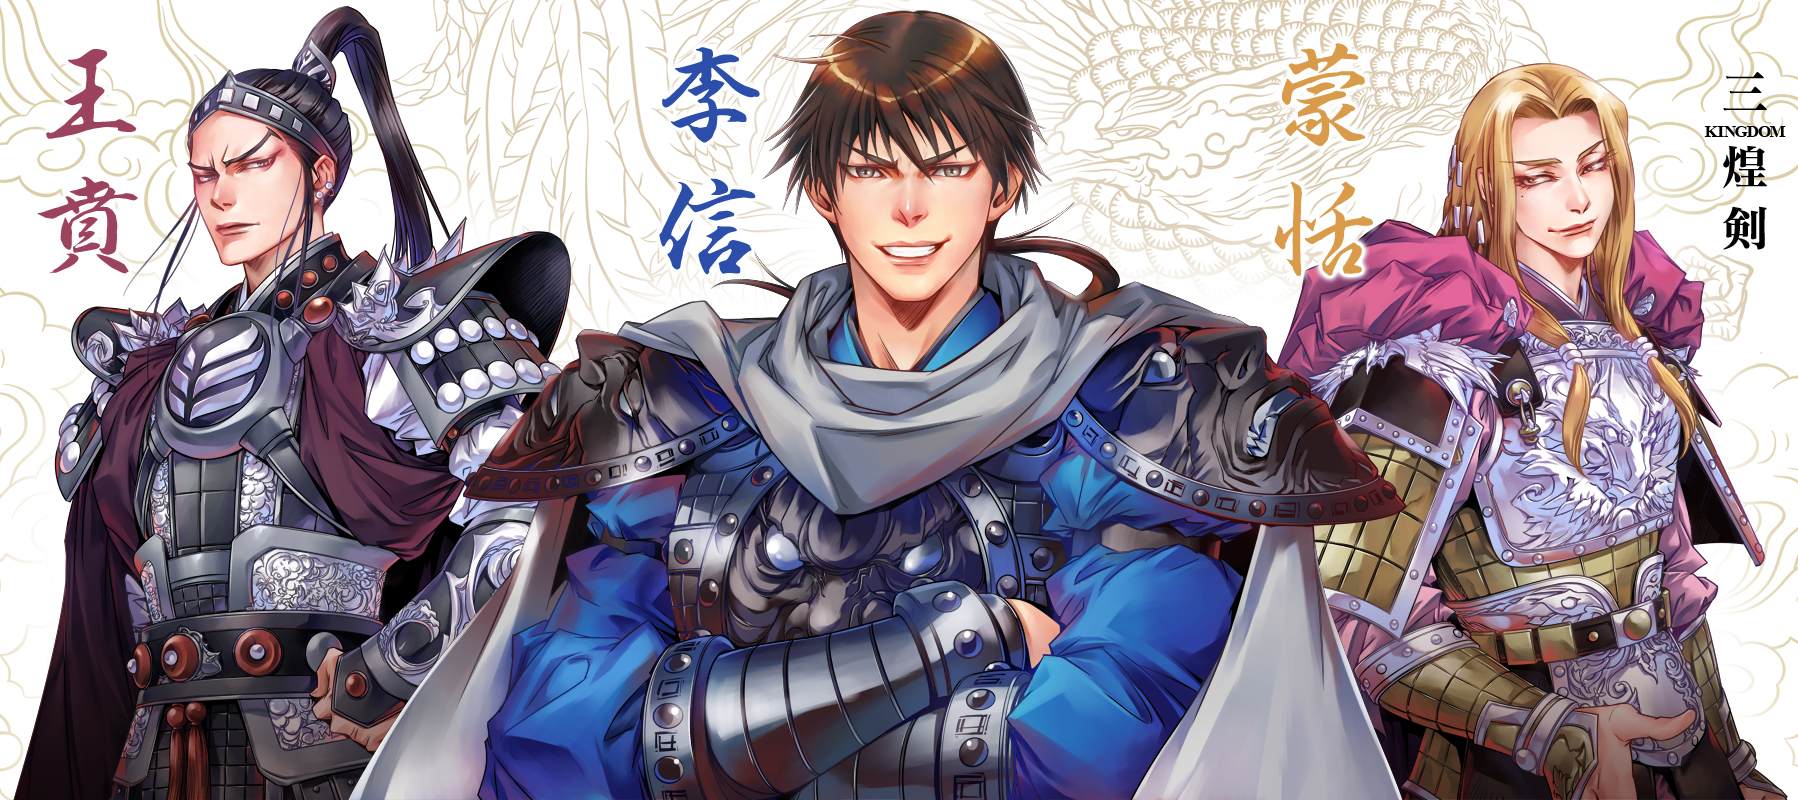 Kingdom Chapter 666 Spoilers, Leaks and Theories